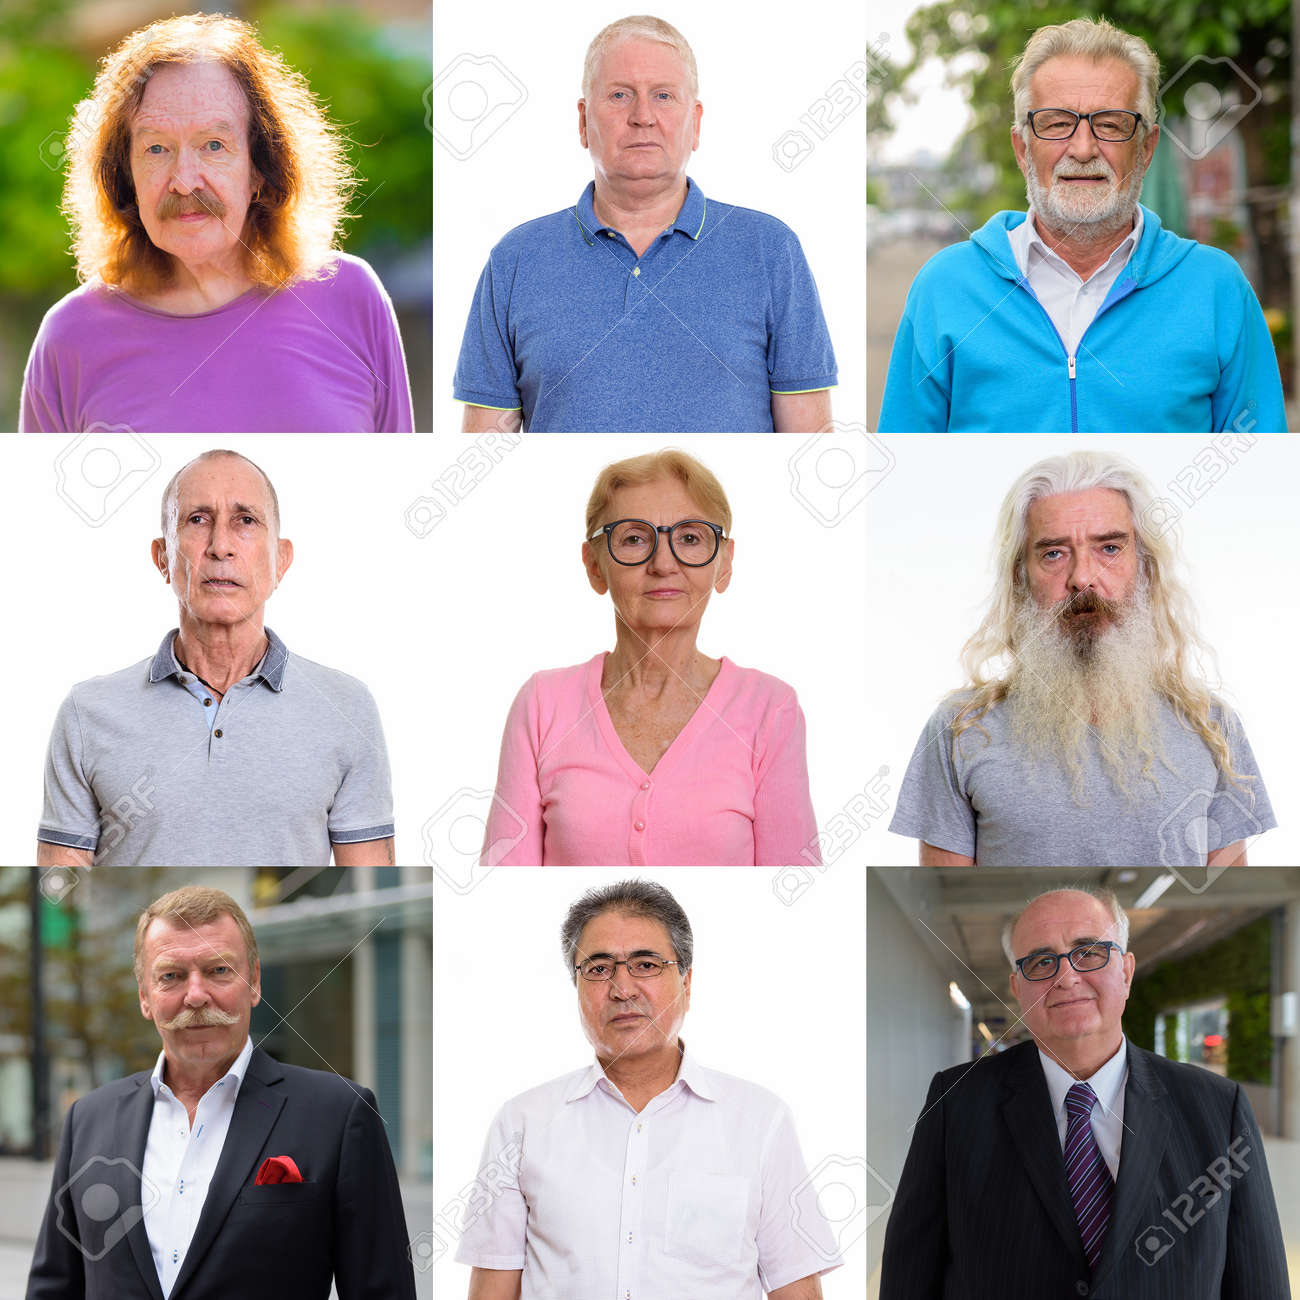 Collage of diverse senior people looking at camera - 155347645